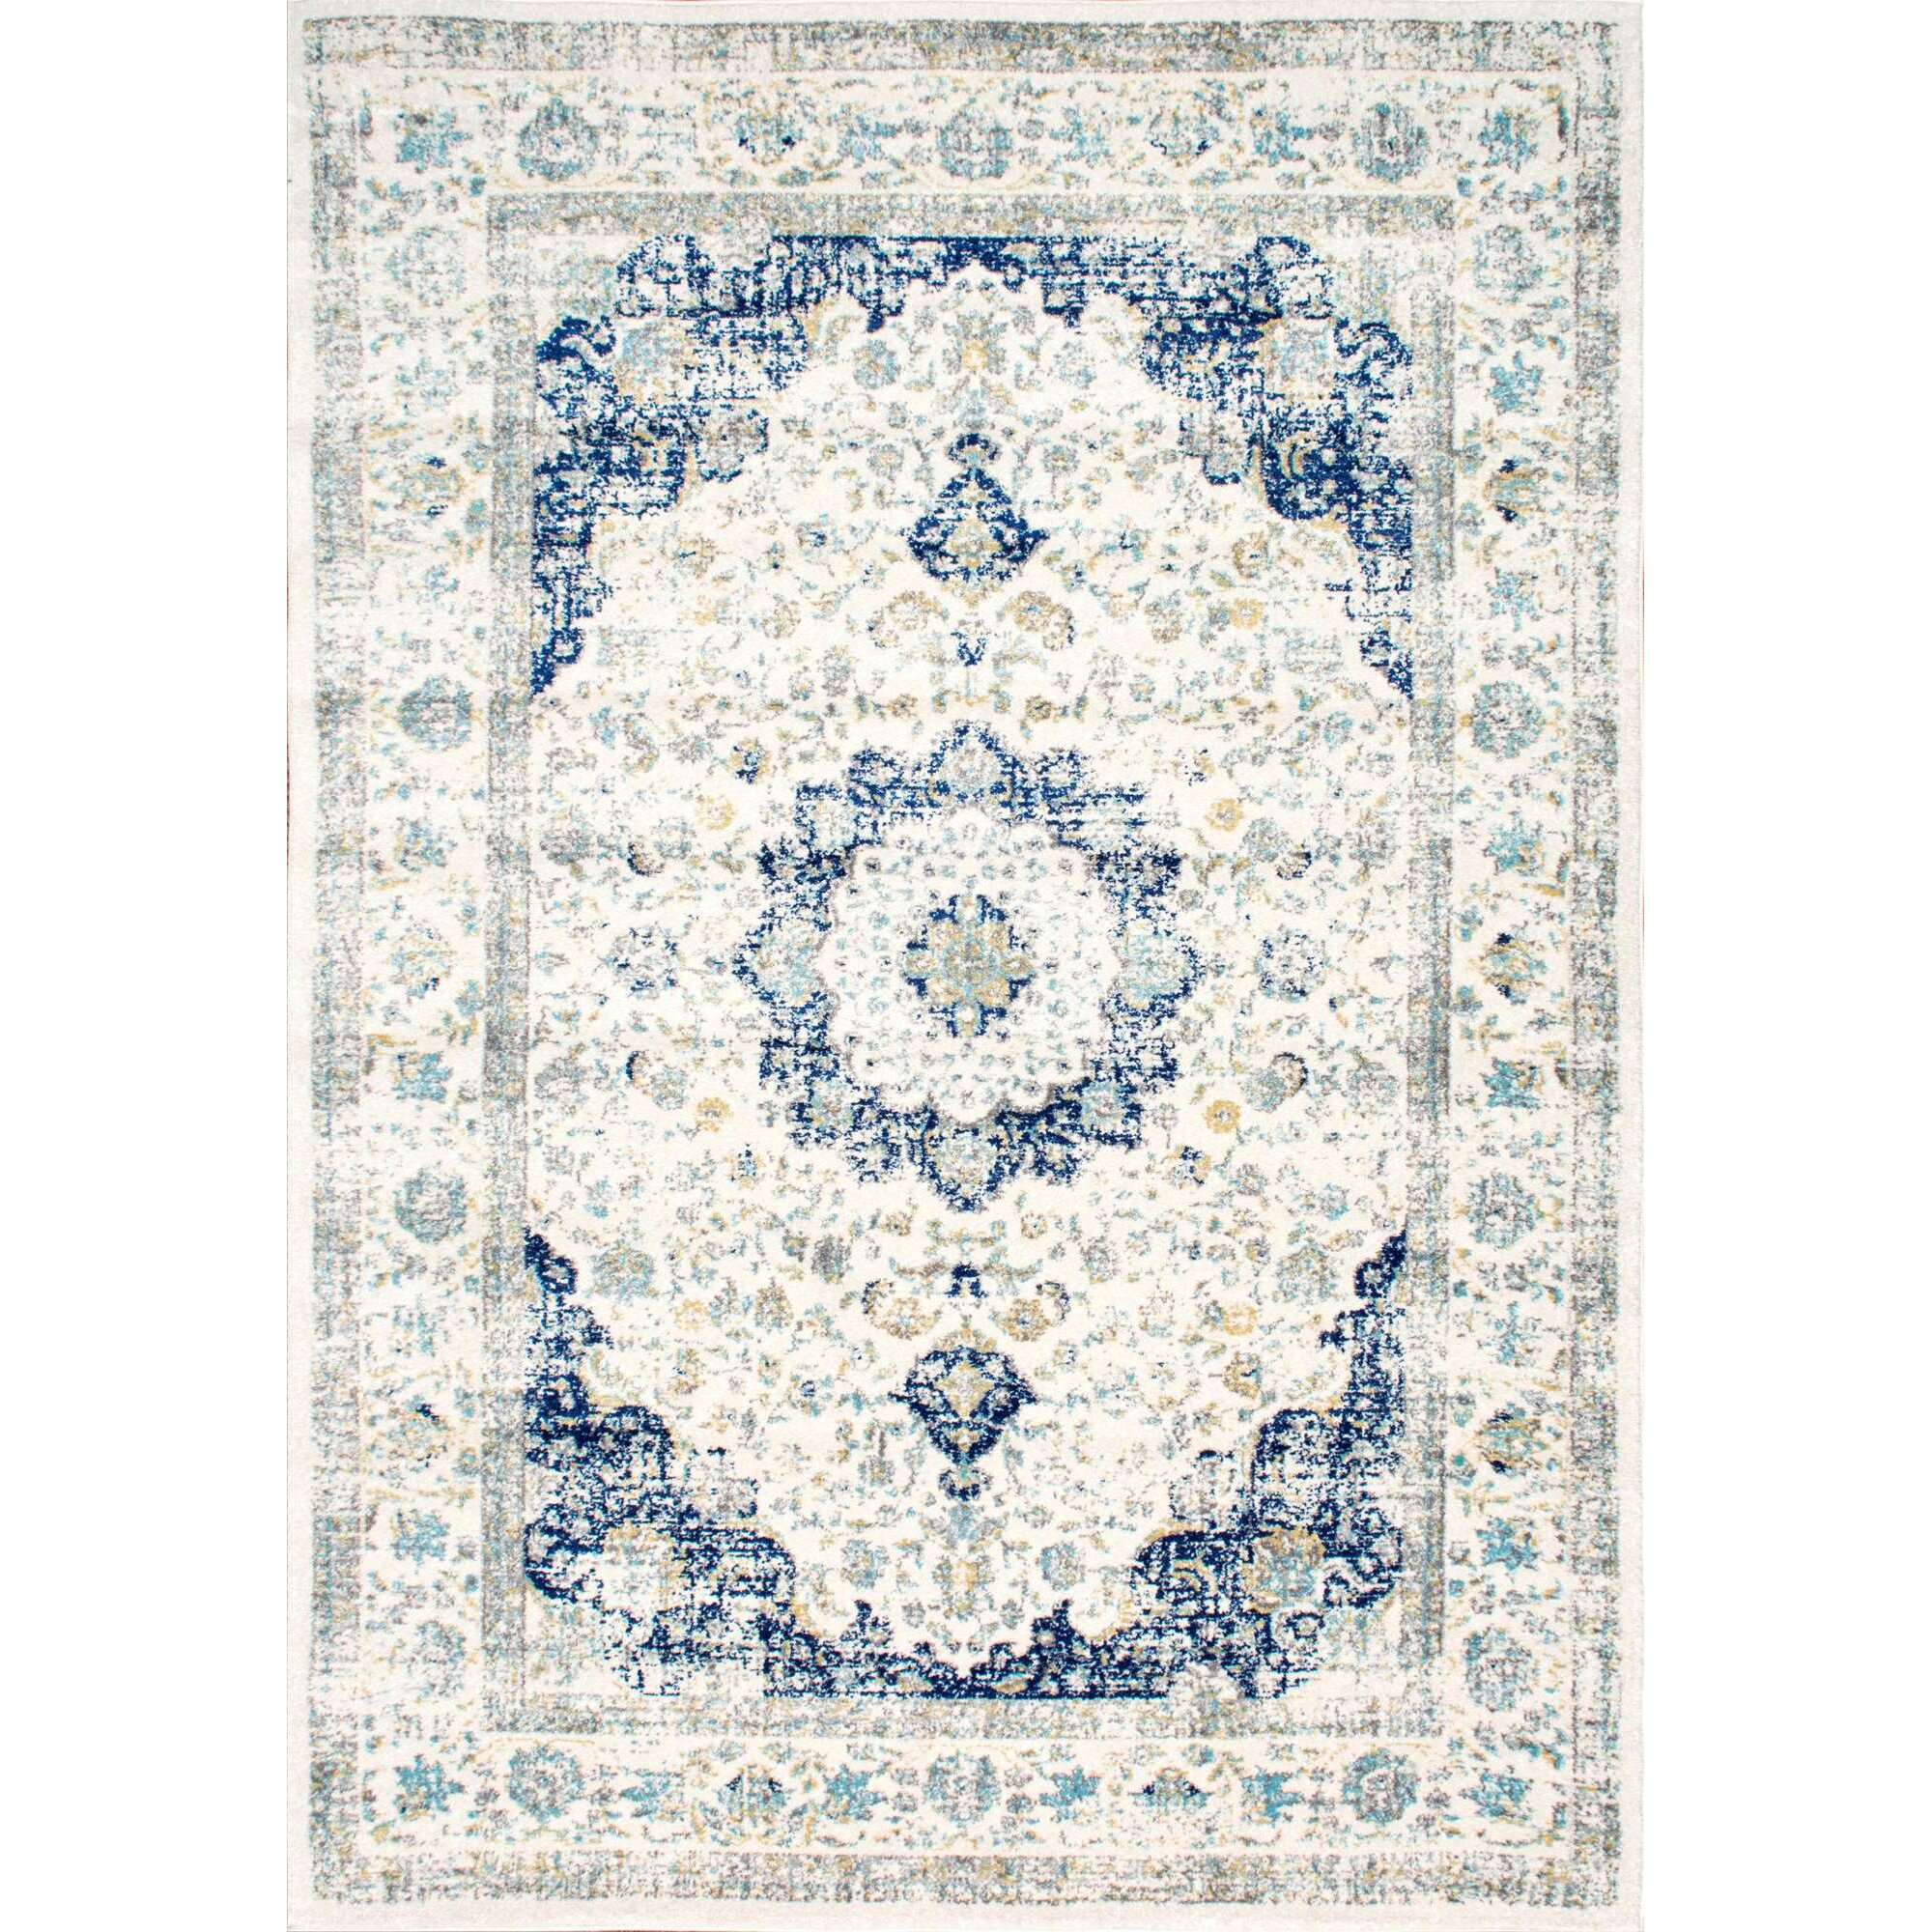 Nuloom verona blue area rug reviews wayfair for 7 x 9 dining room rugs